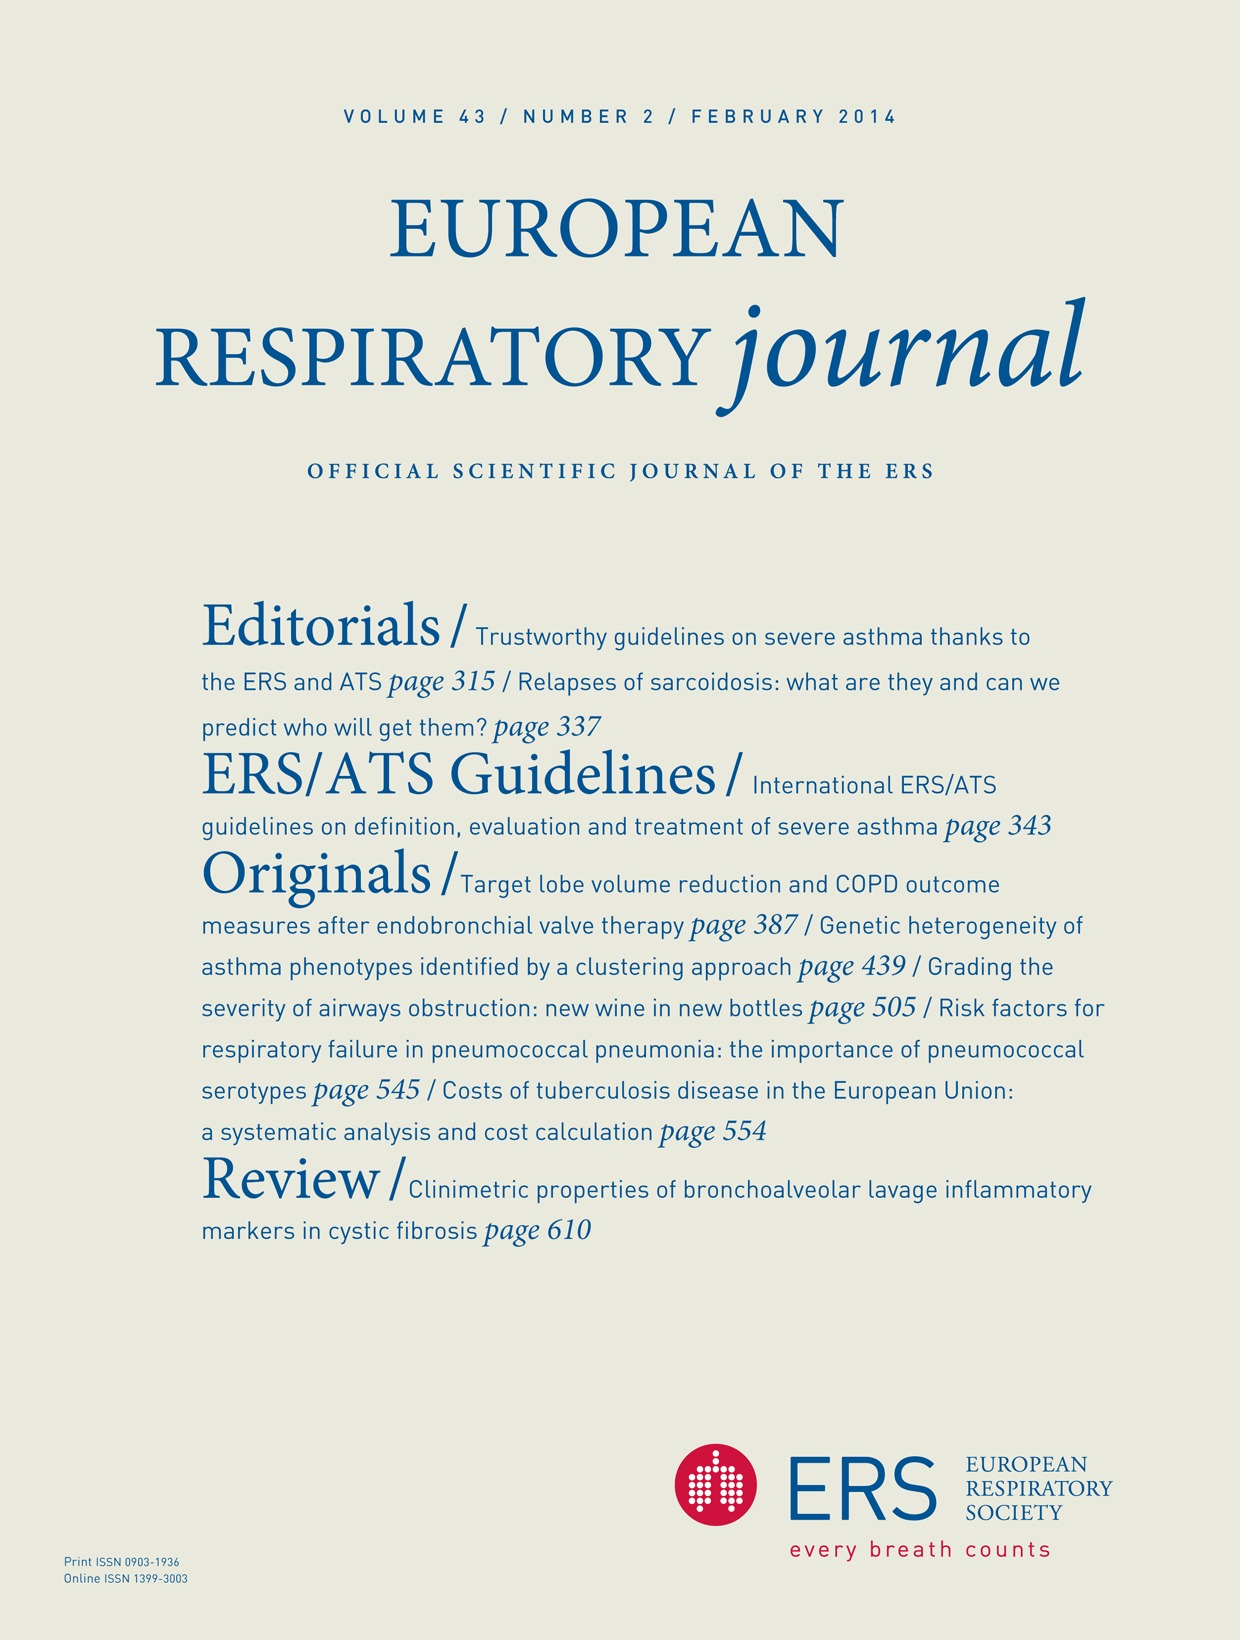 Target lobe volume reduction and COPD outcome measures after